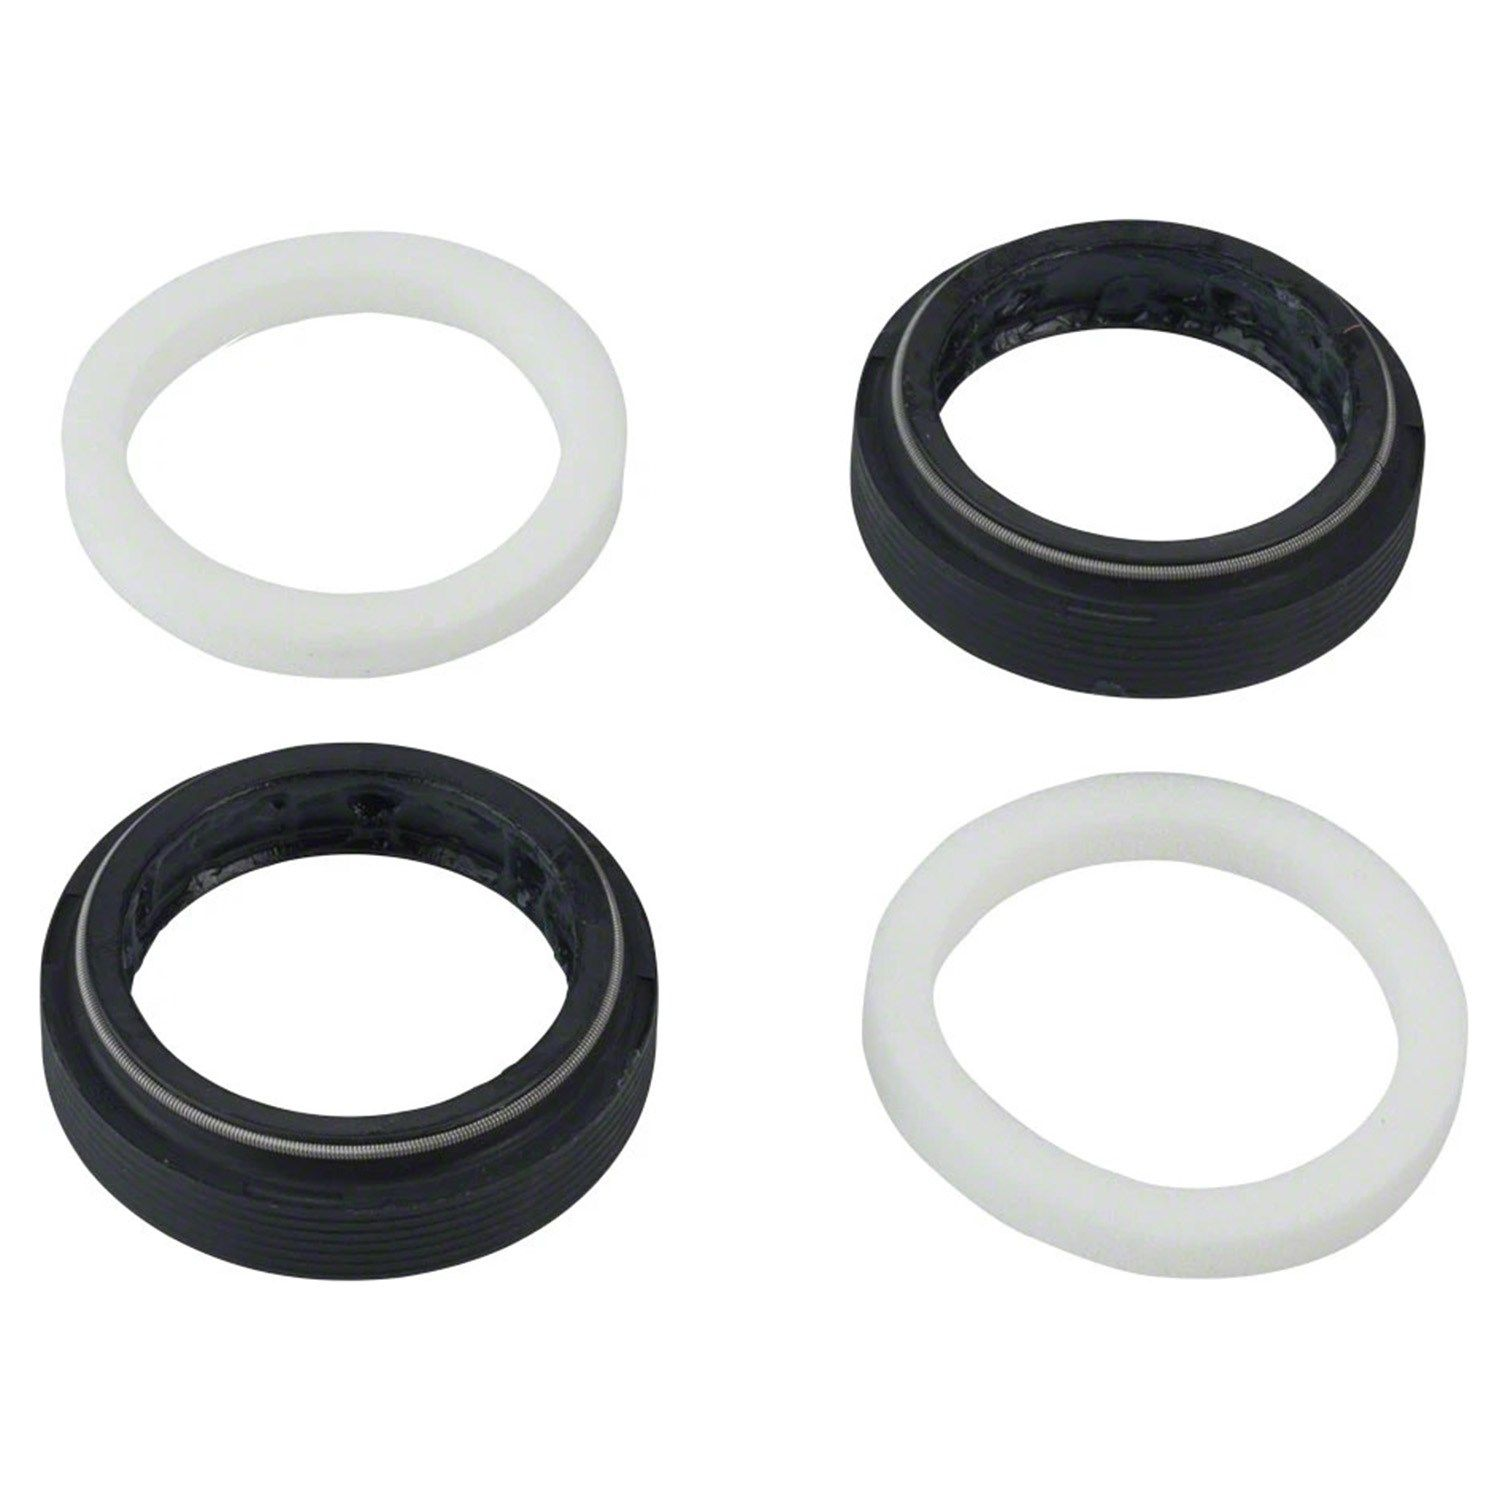 Yari 35mm SKF Seal RockShox Pike BoXXer Dust Seal and Foam Ring Lyrik B1